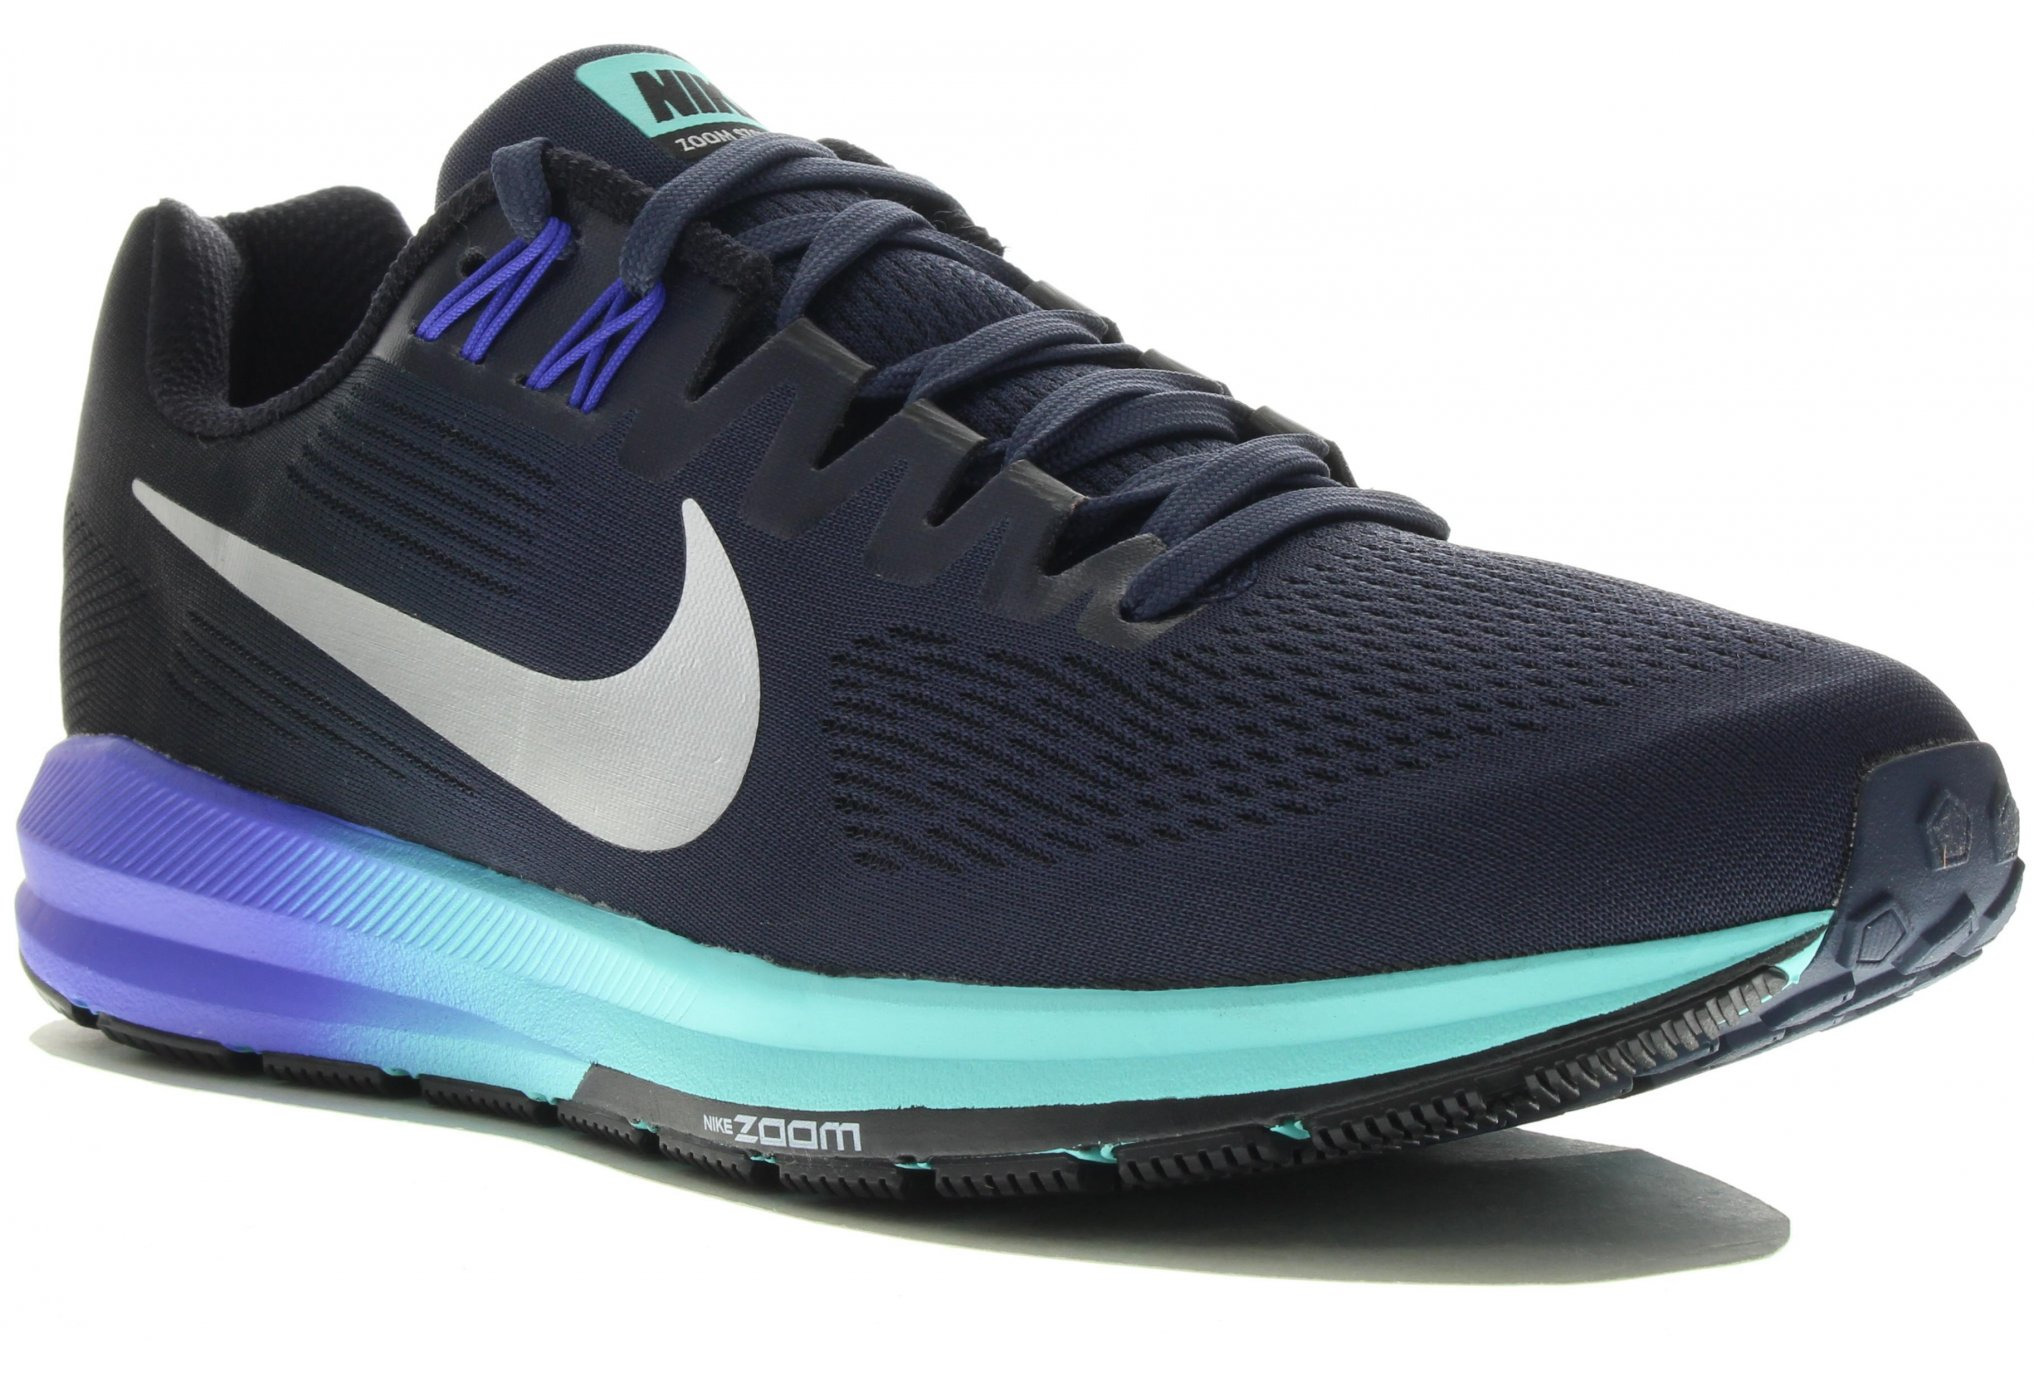 nike chaussure de runing fille